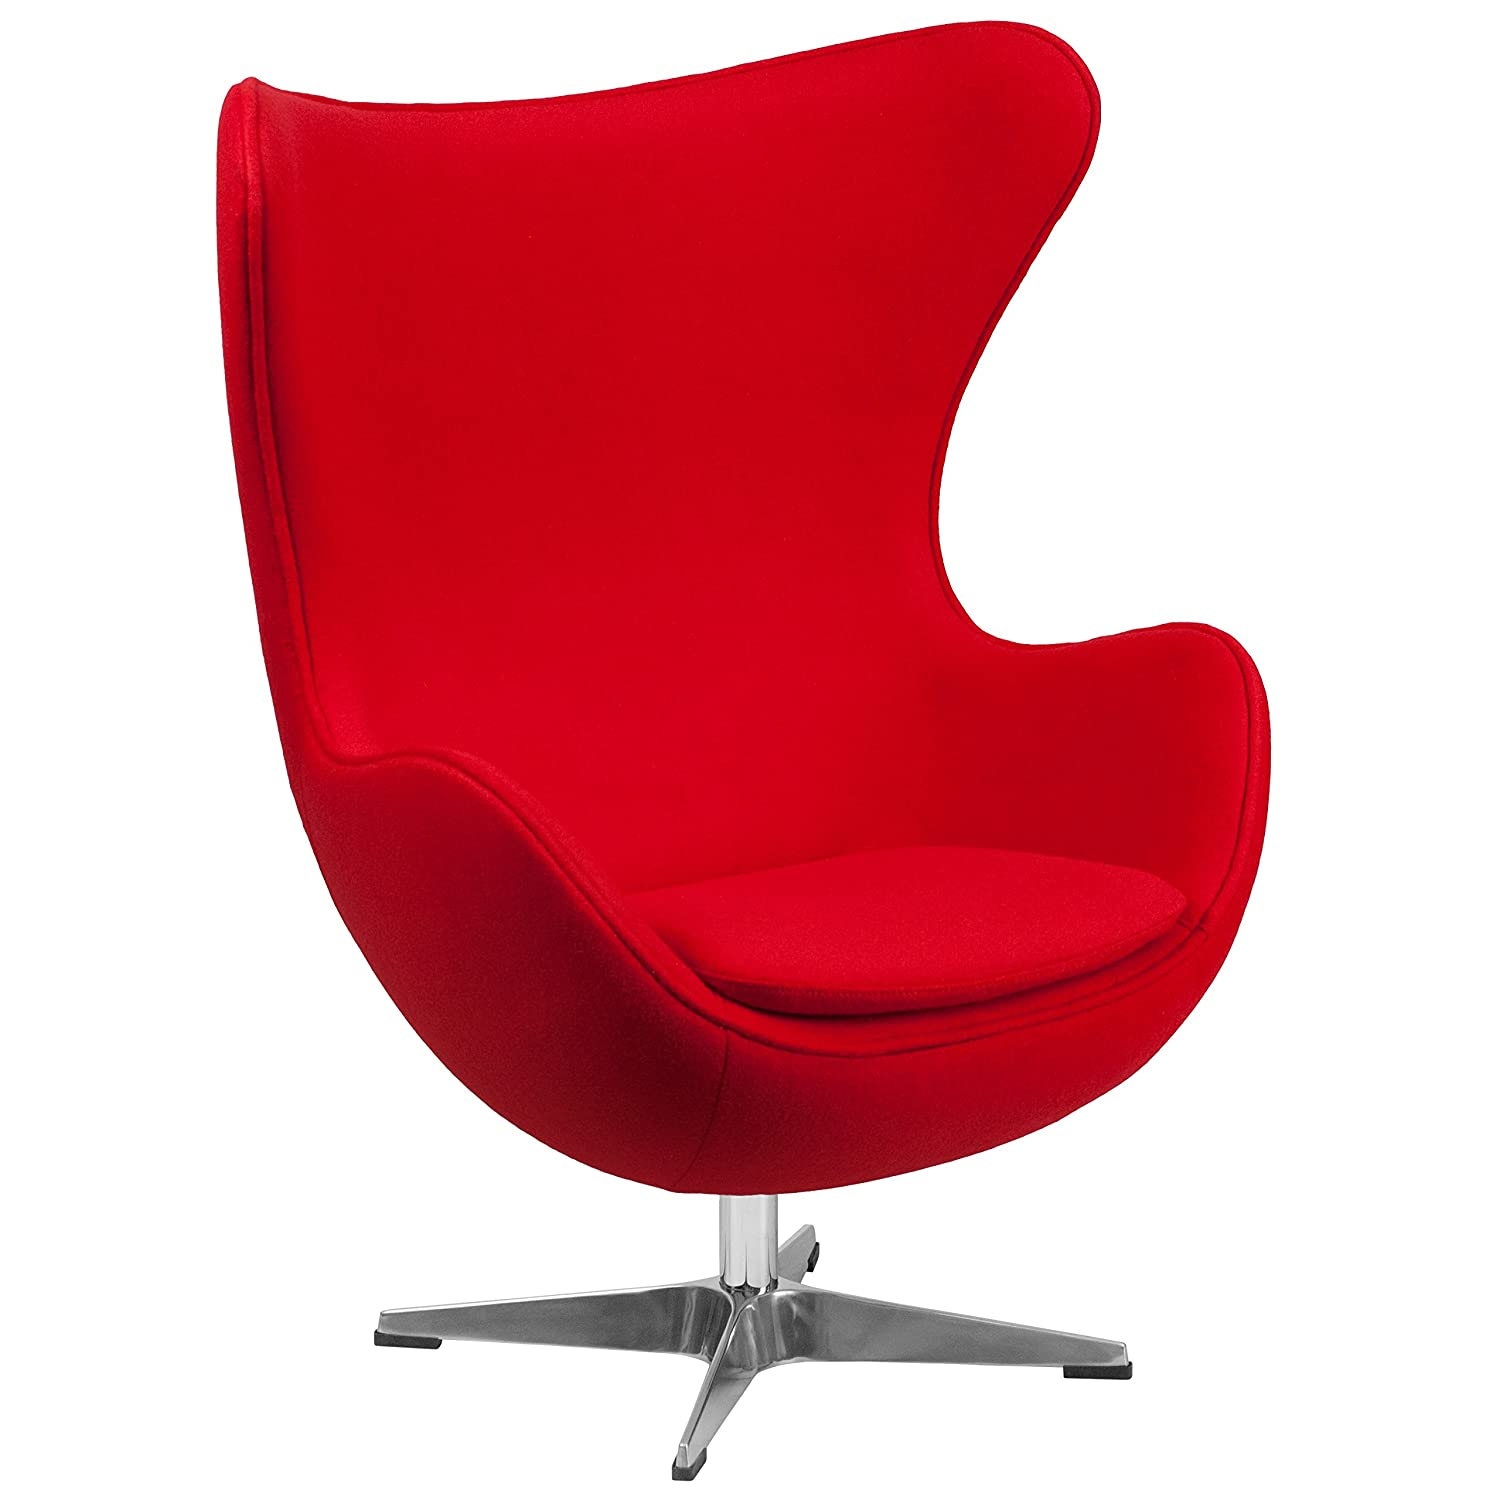 Genial Amazon.com: Flash Furniture Red Wool Fabric Egg Chair With Tilt Lock  Mechanism: Kitchen U0026 Dining